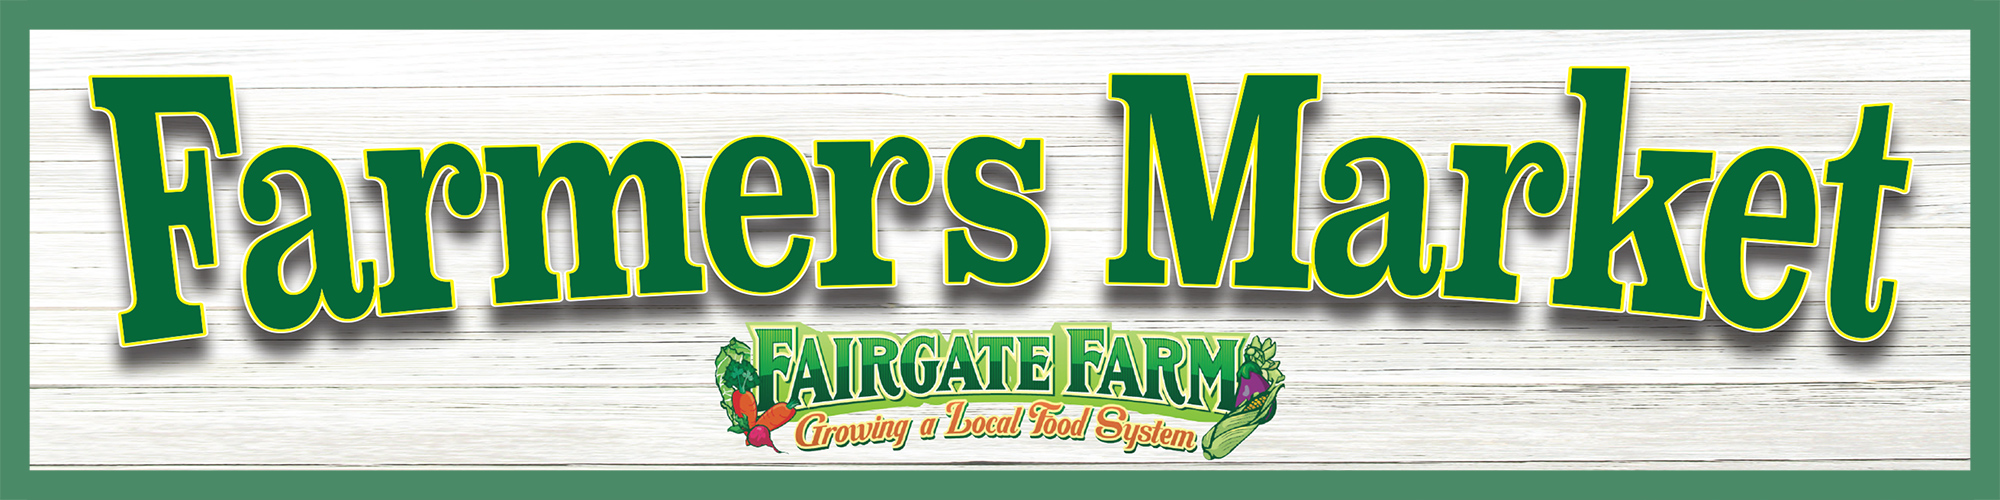 Fairgate Farm Farmers Market